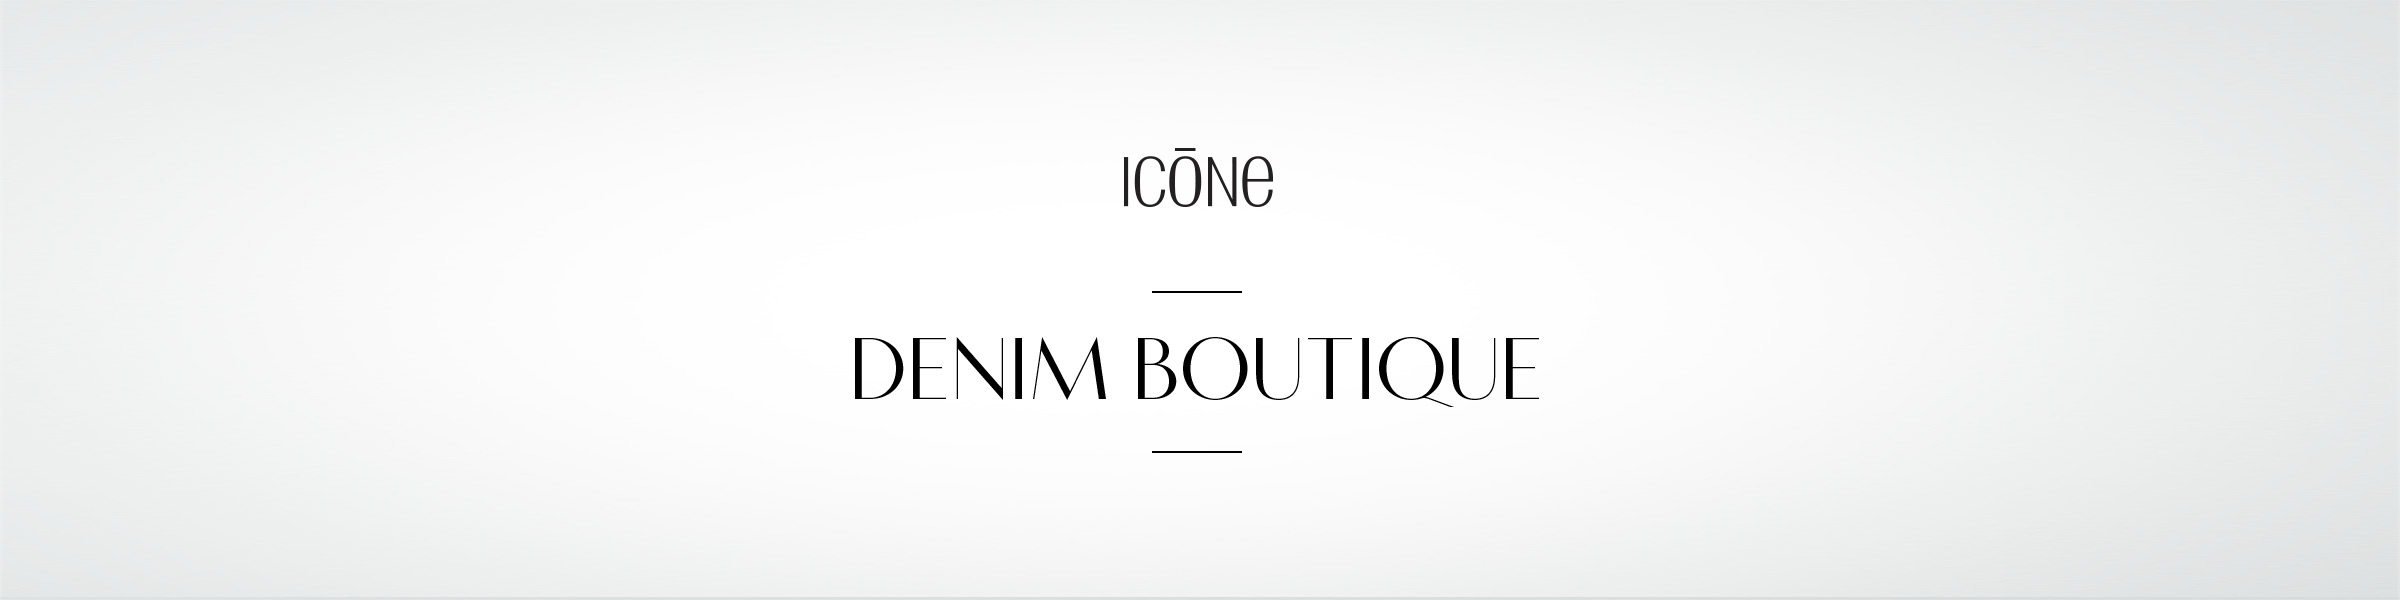 P18-TBGEN_FEMME_ICONE-Boutique denim.psd